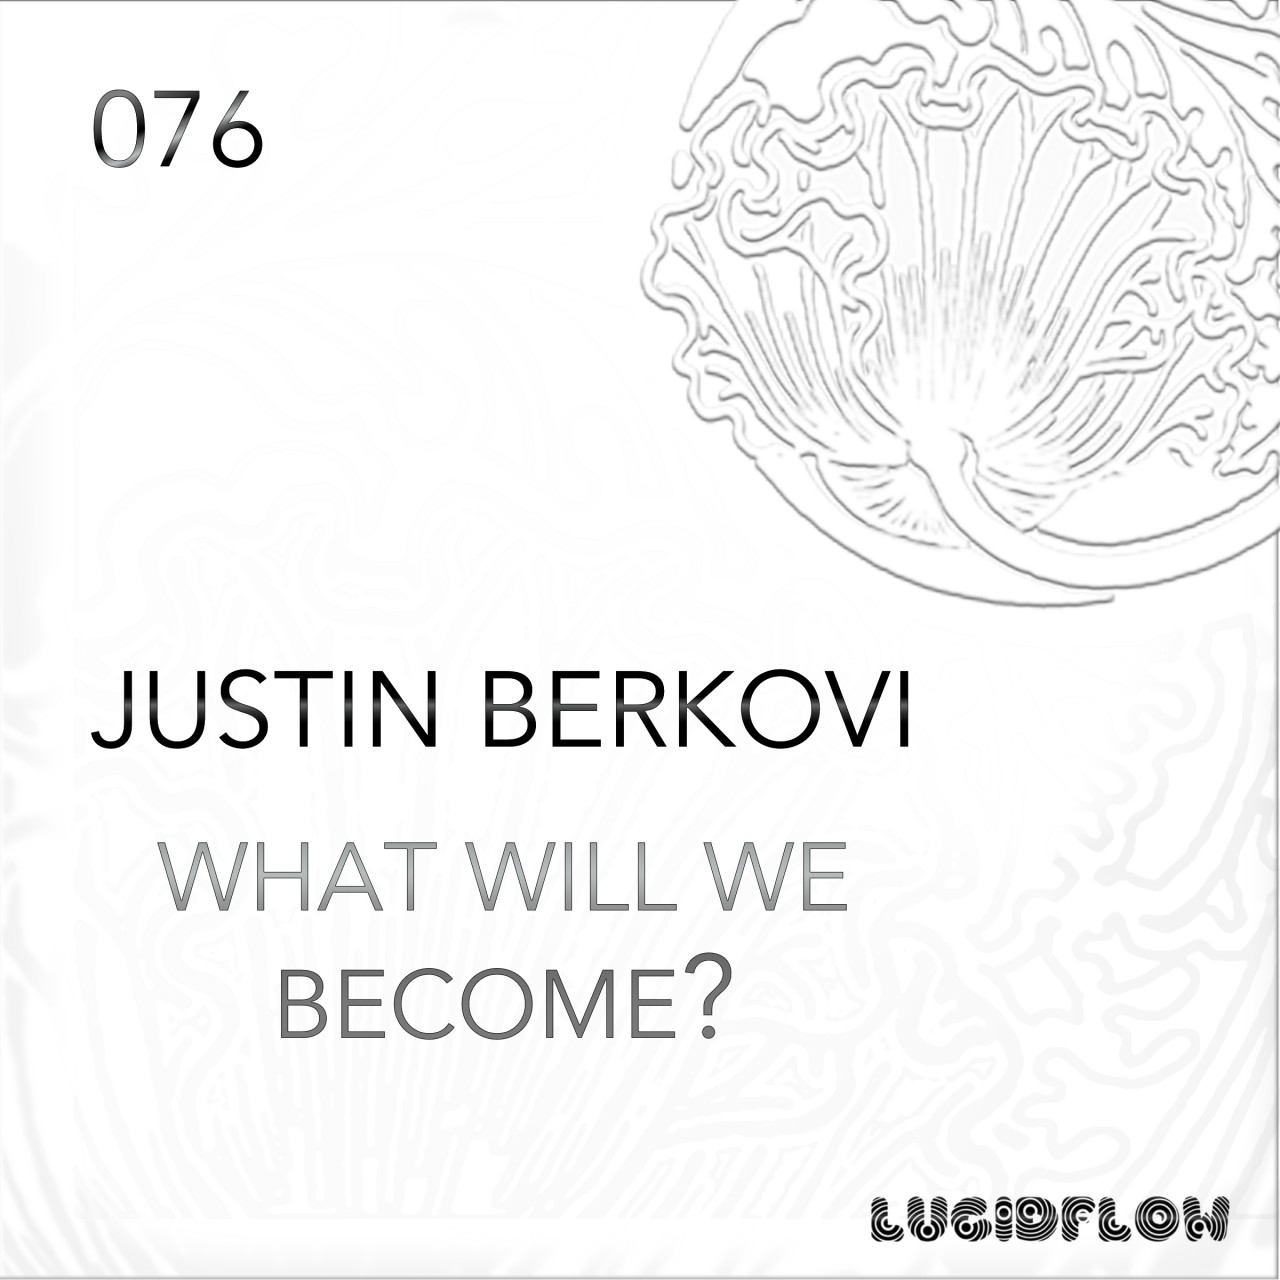 LF076 – Justin Berkovi 'What will we become?' EP (VINYL 22.2.2014)